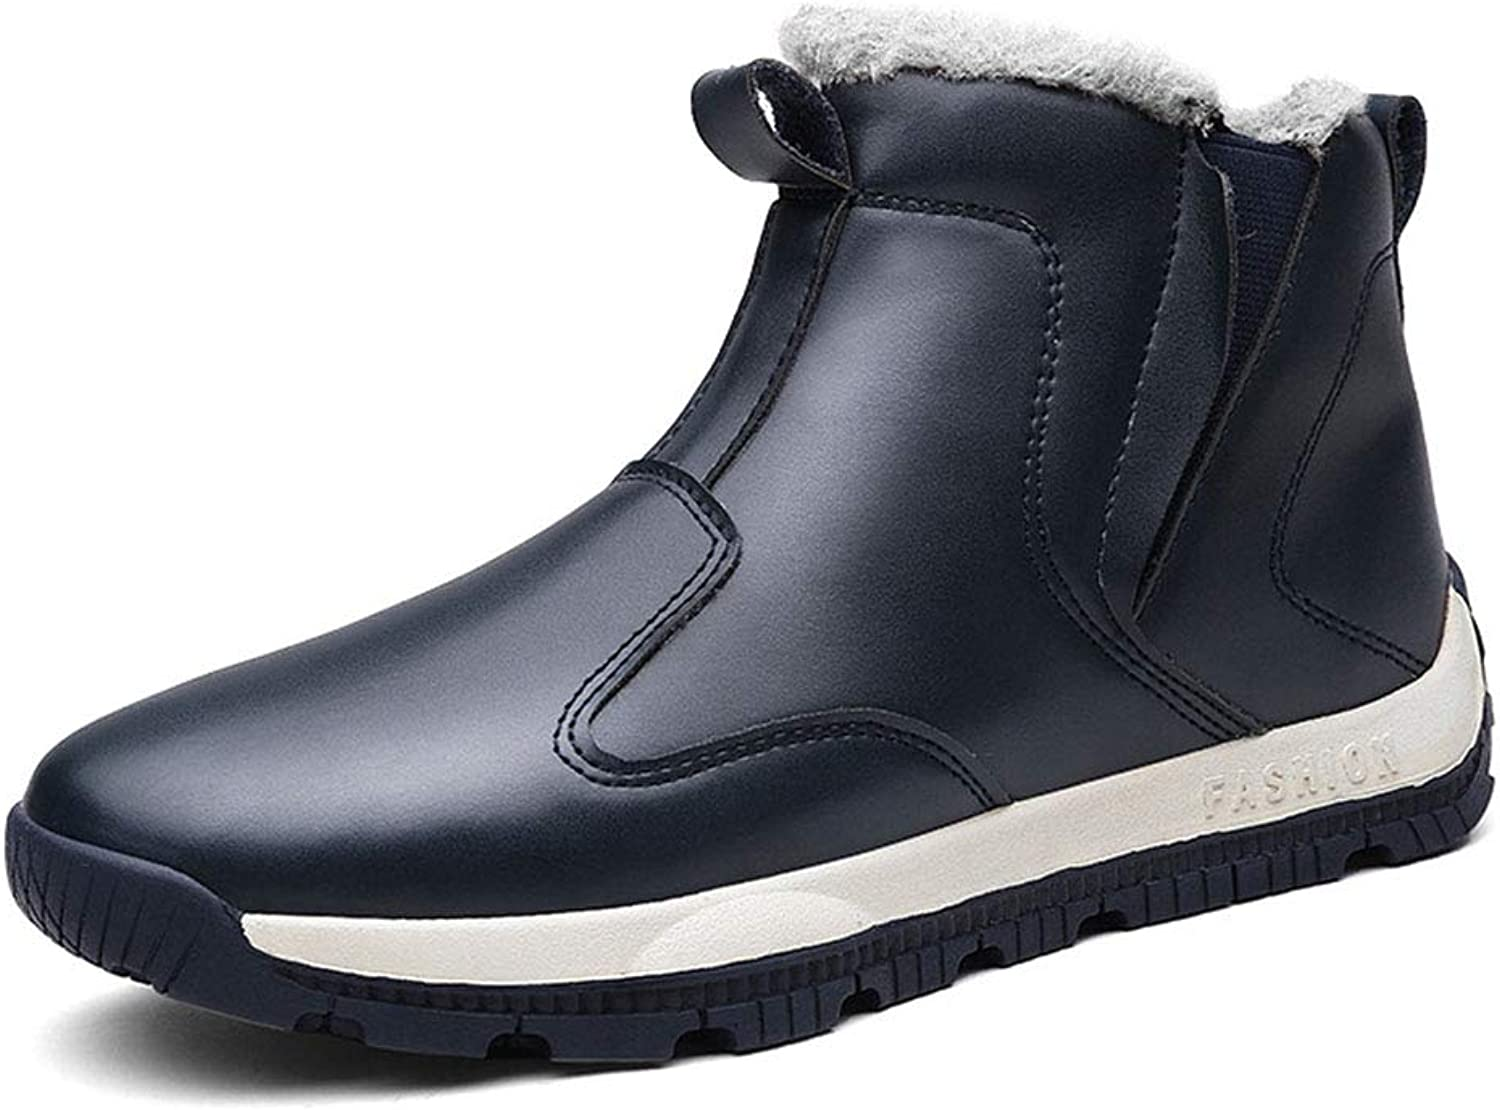 Men's shoes Plus Velvet Fashion Casual Snow Boots Fall Winter High-top Running shoes Martin Boots (color   A, Size   46)